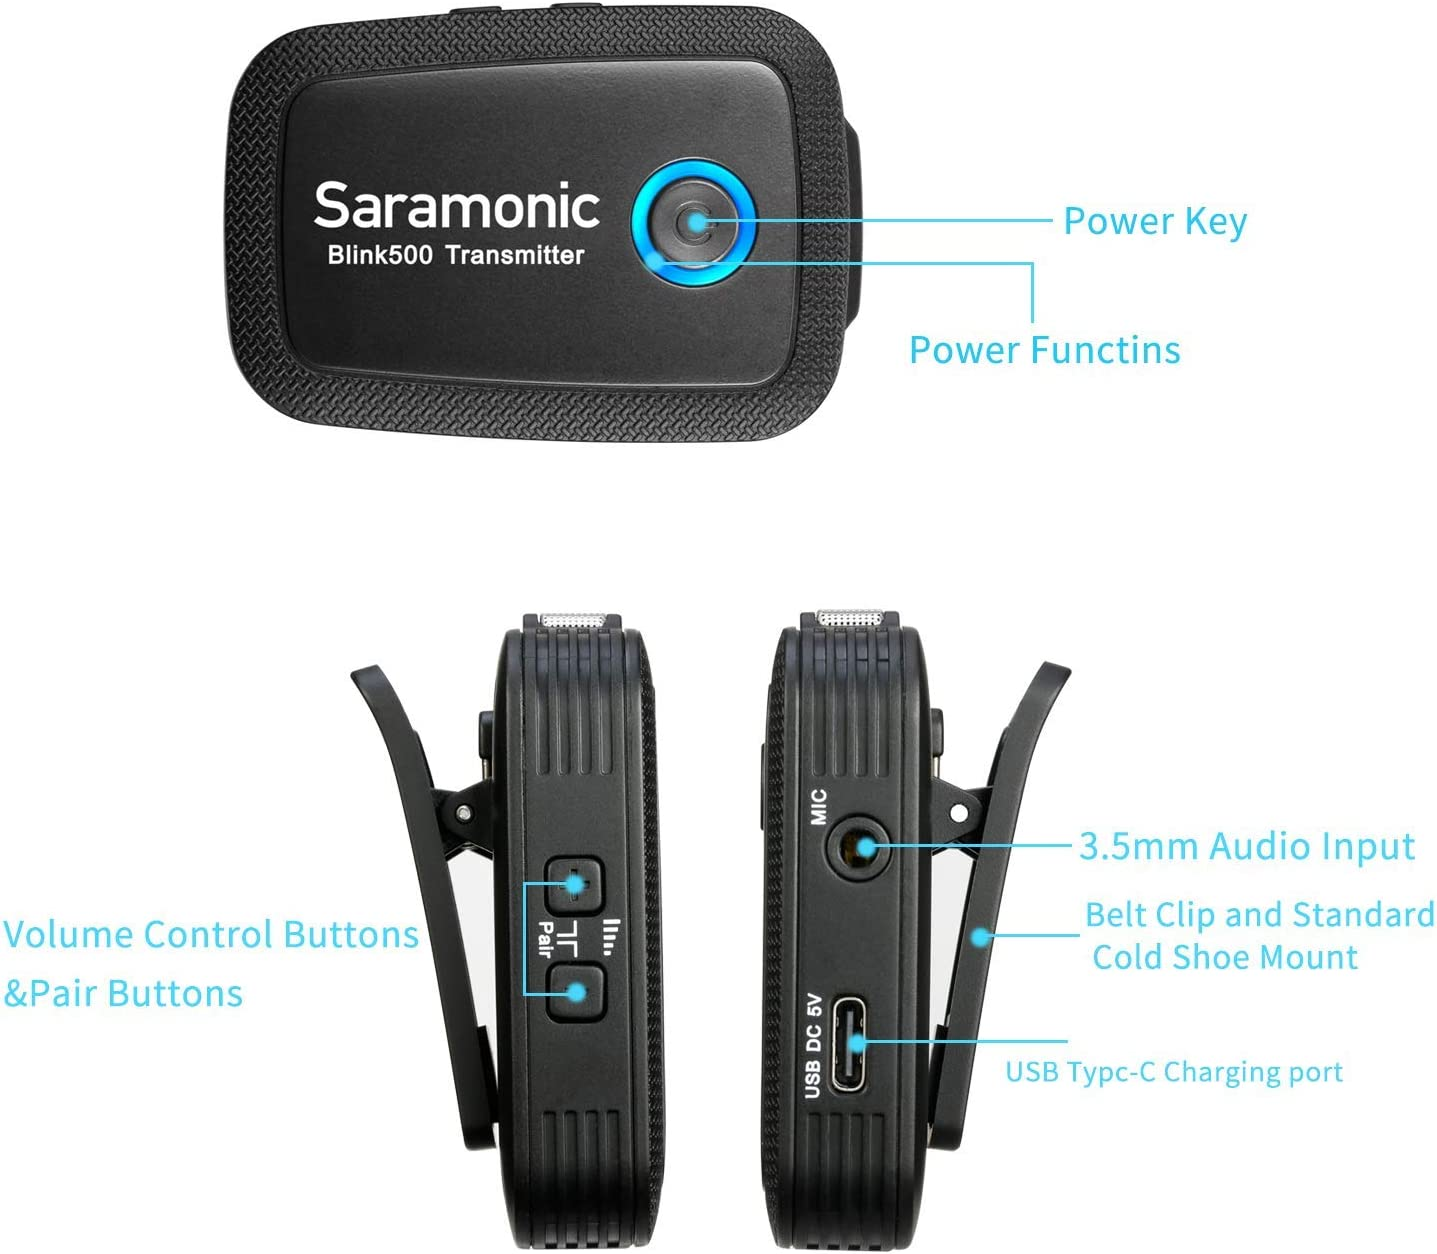 Saramonic Blink500 B6 2.4GHz Ultracompact Wireless Lavalier Microphone System with Battery-Free Plug&Play USB Type-C Receiver for Samsung Galaxy, LG, HTC Google, and Other USB-C Type Devices